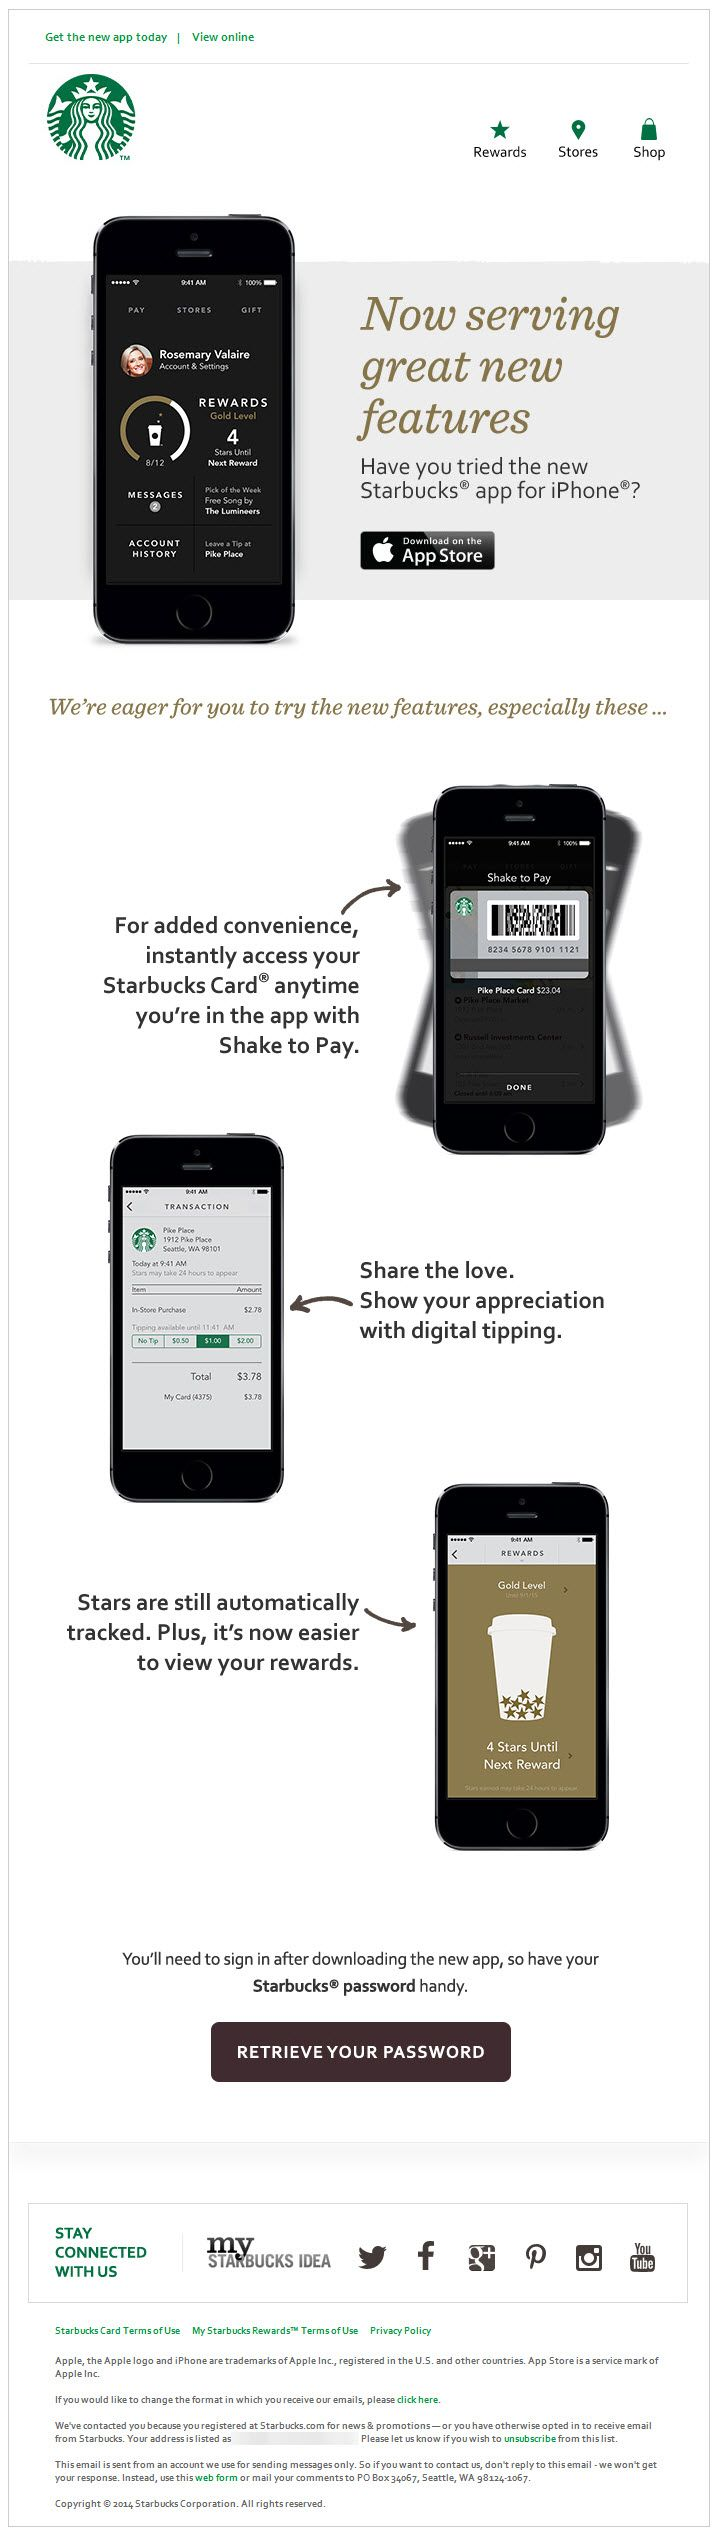 """Starbucks >> sent 3/21/14 >> The new Starbucks app for iPhone is ready to download >> This is a great app update announcement, complete with feature highlights and a relevant """"Retrieve Your Password"""" call-to-action. And, of course, because this email targets smartphone users, the email is very mobile-aware, with big text and images and lots of white space. —Chris Studabaker, Regional Director of Strategic Services, Salesforce ExactTarget Marketing Cloud"""